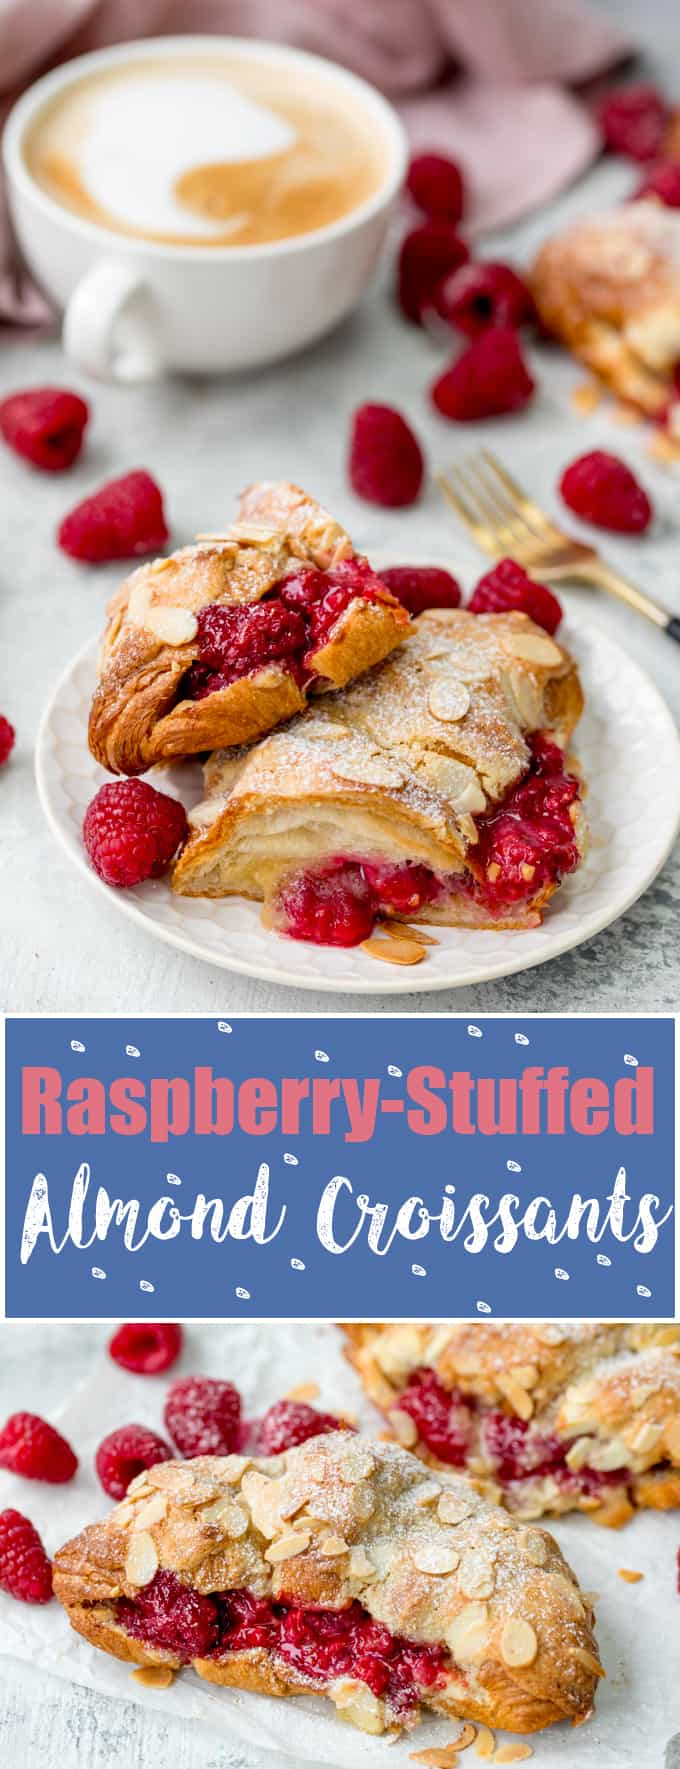 Looking for a breakfast treat? These Raspberry and Almond Croissants, filled and topped with frangipane are the best! A great Christmas breakfast! #almondcroissants #christmasbreakfast #mothersdaybreakfast #raspberrycroissant